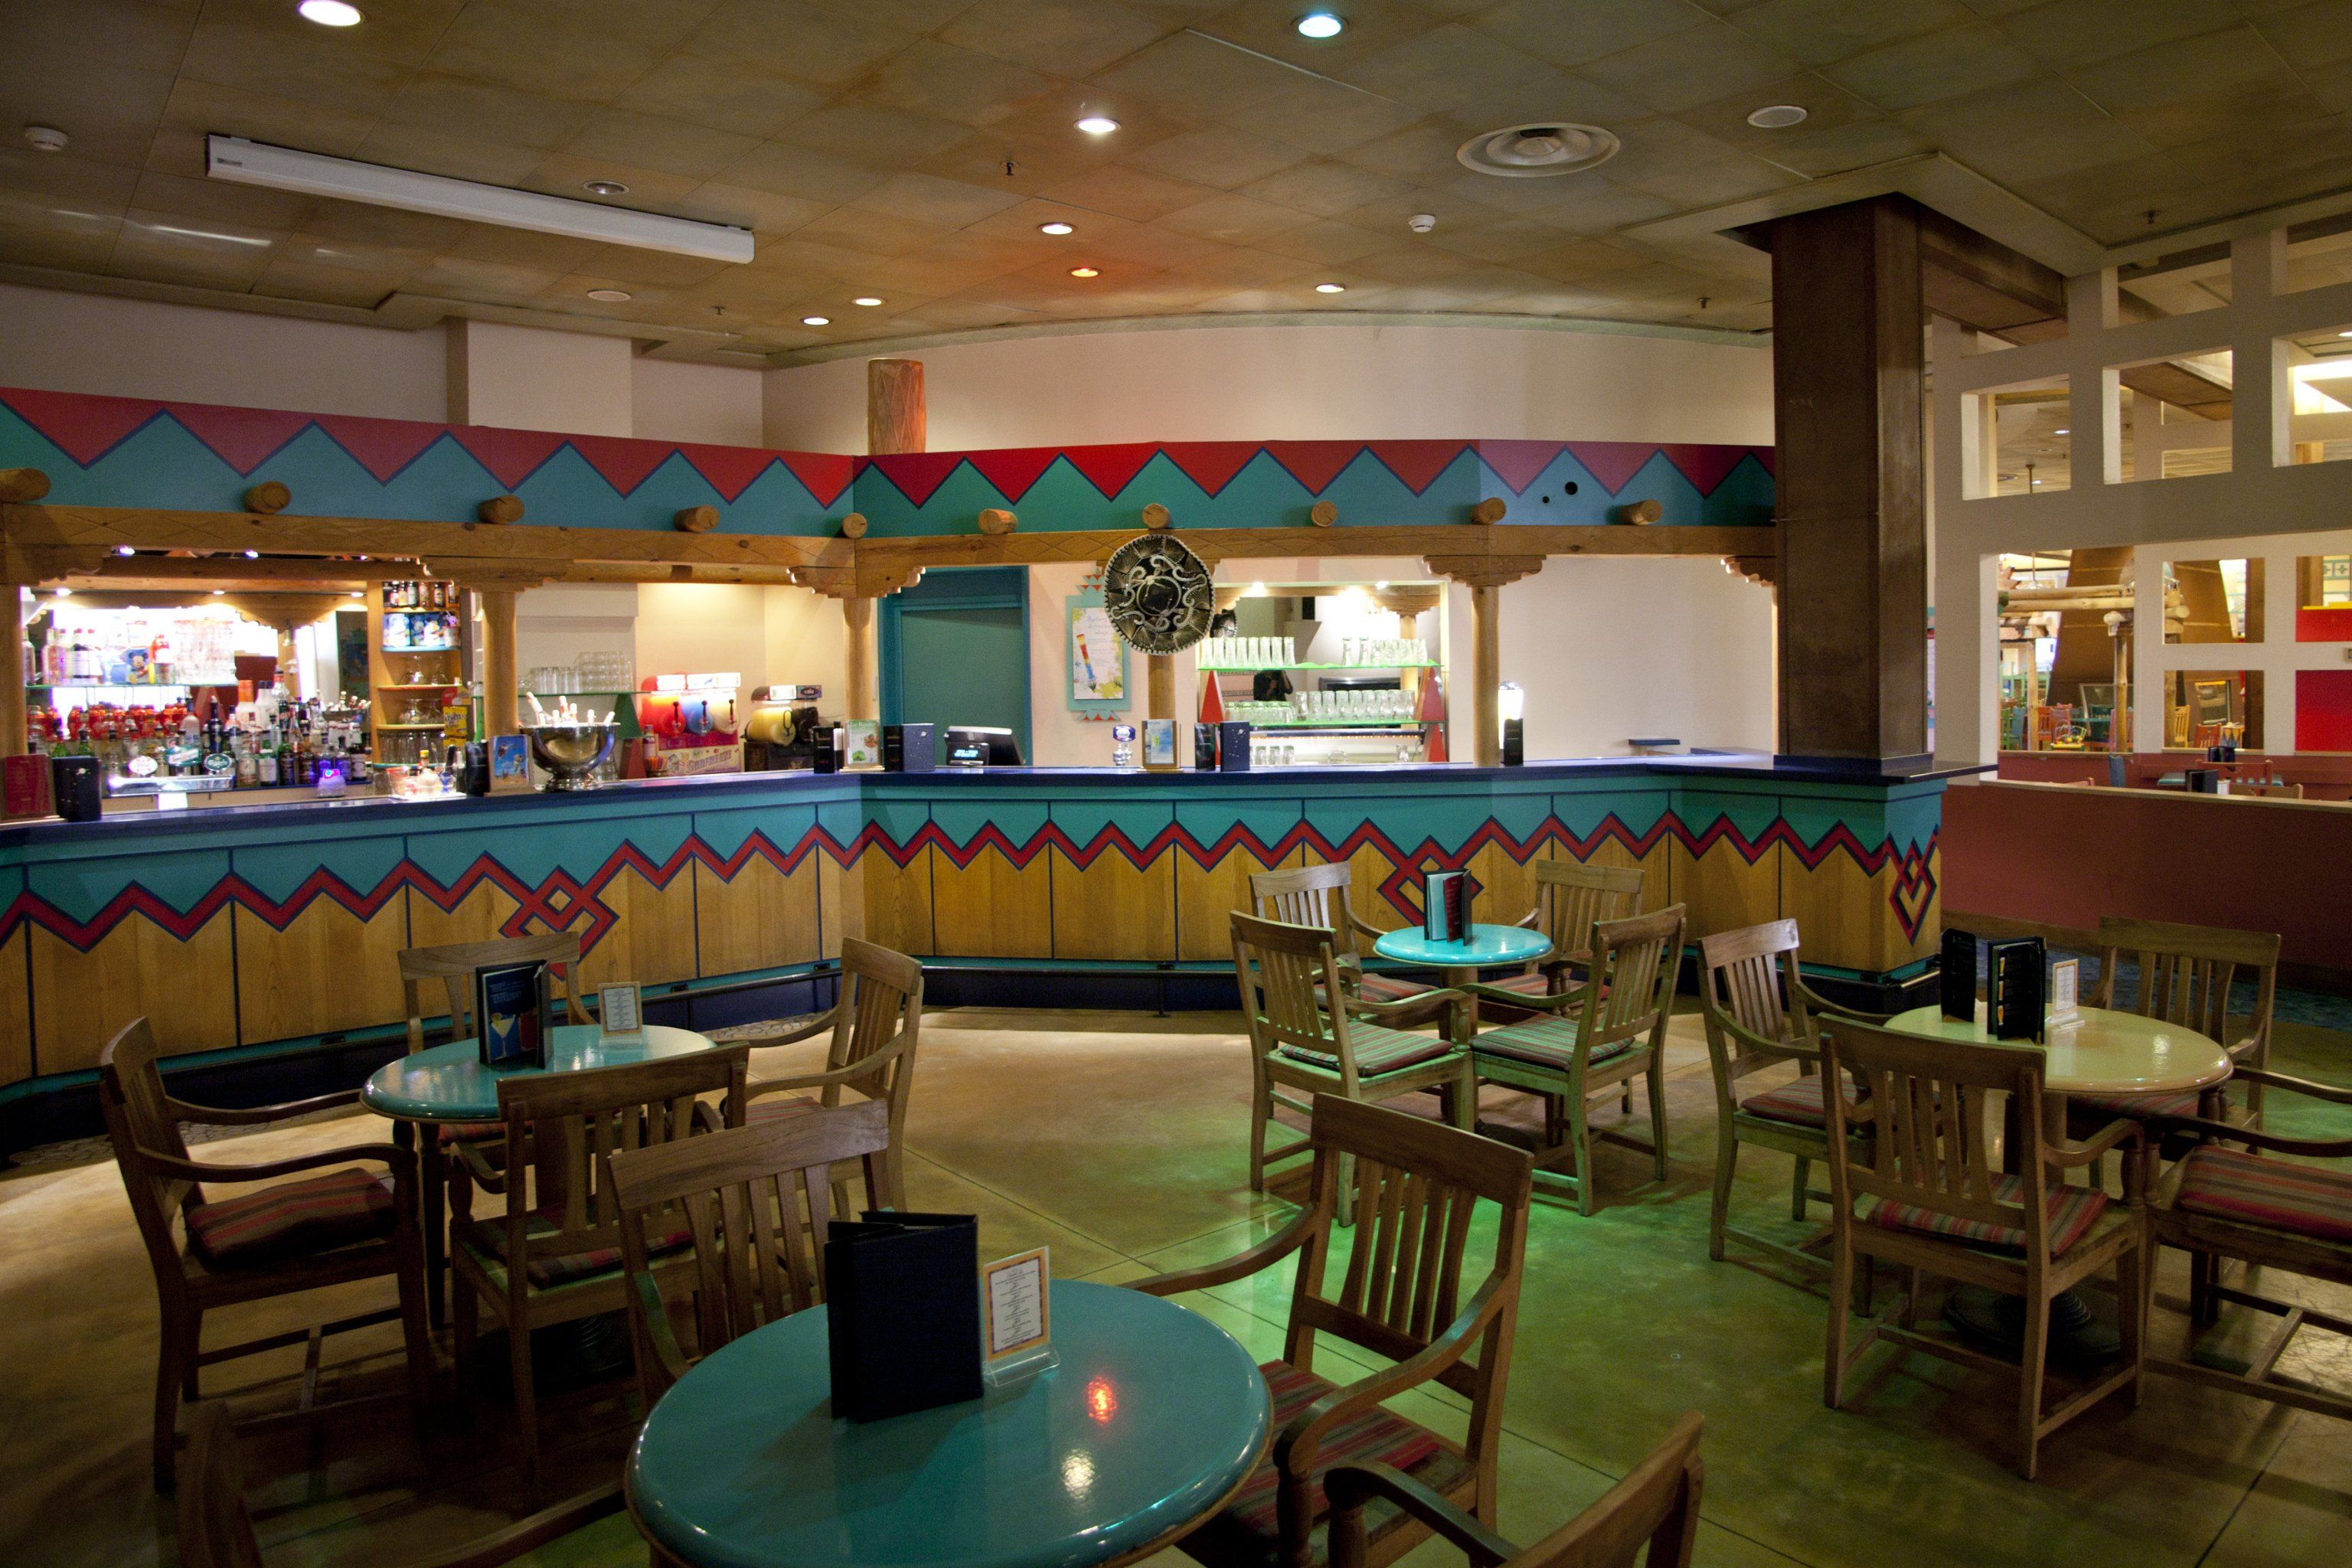 Disney Hotels Santa Fe Rio Grande Bar Disneyland Paris Kid